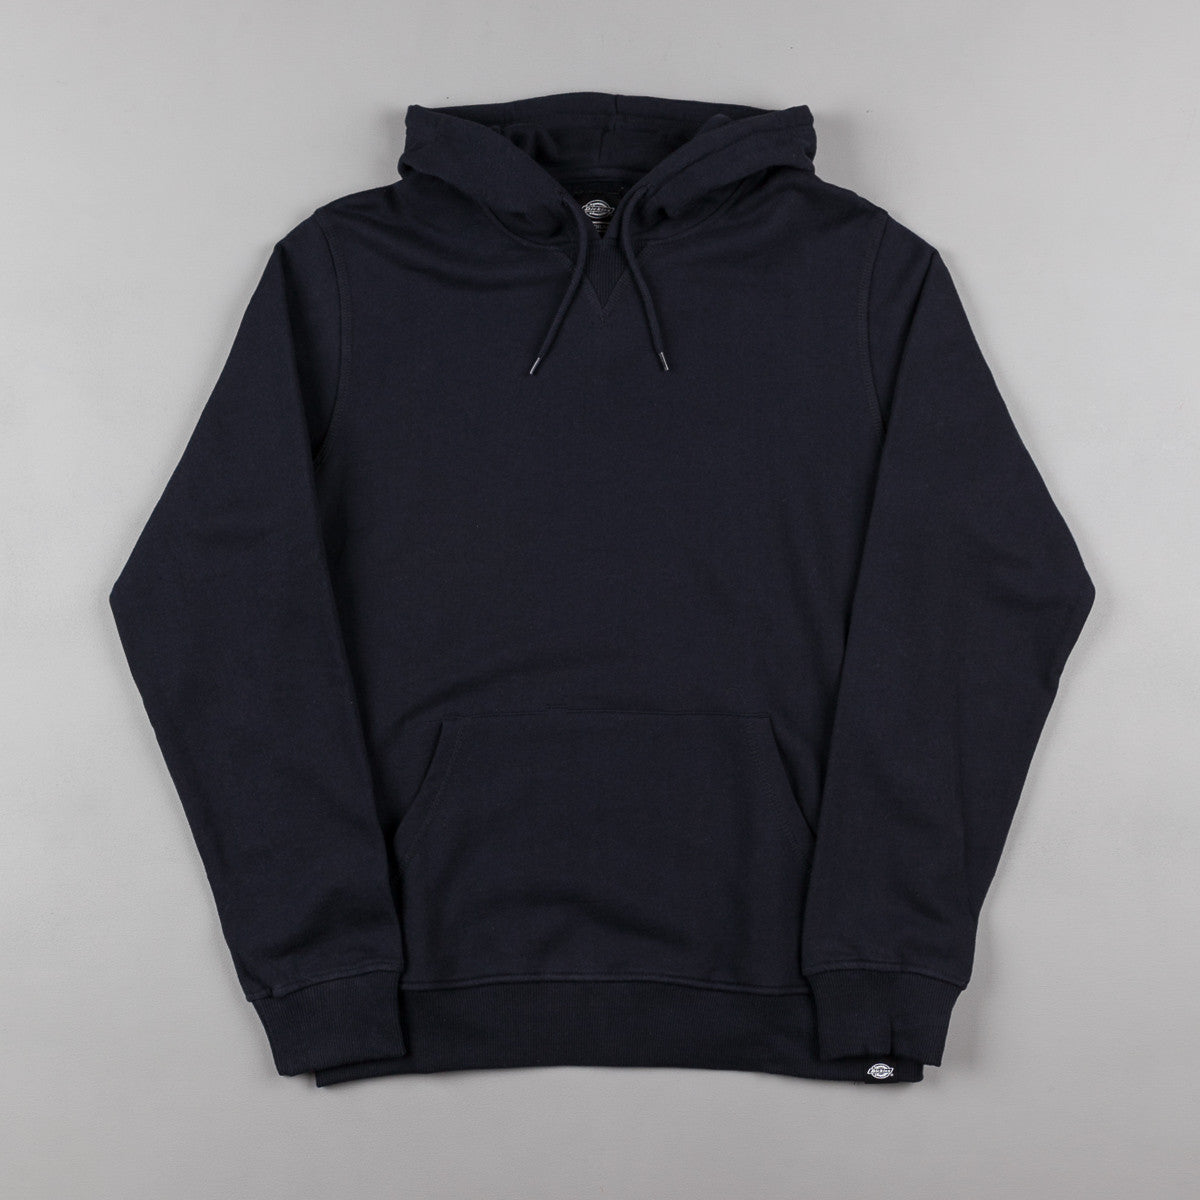 Dickies Philadelphia Hooded Sweatshirt - Dark Navy